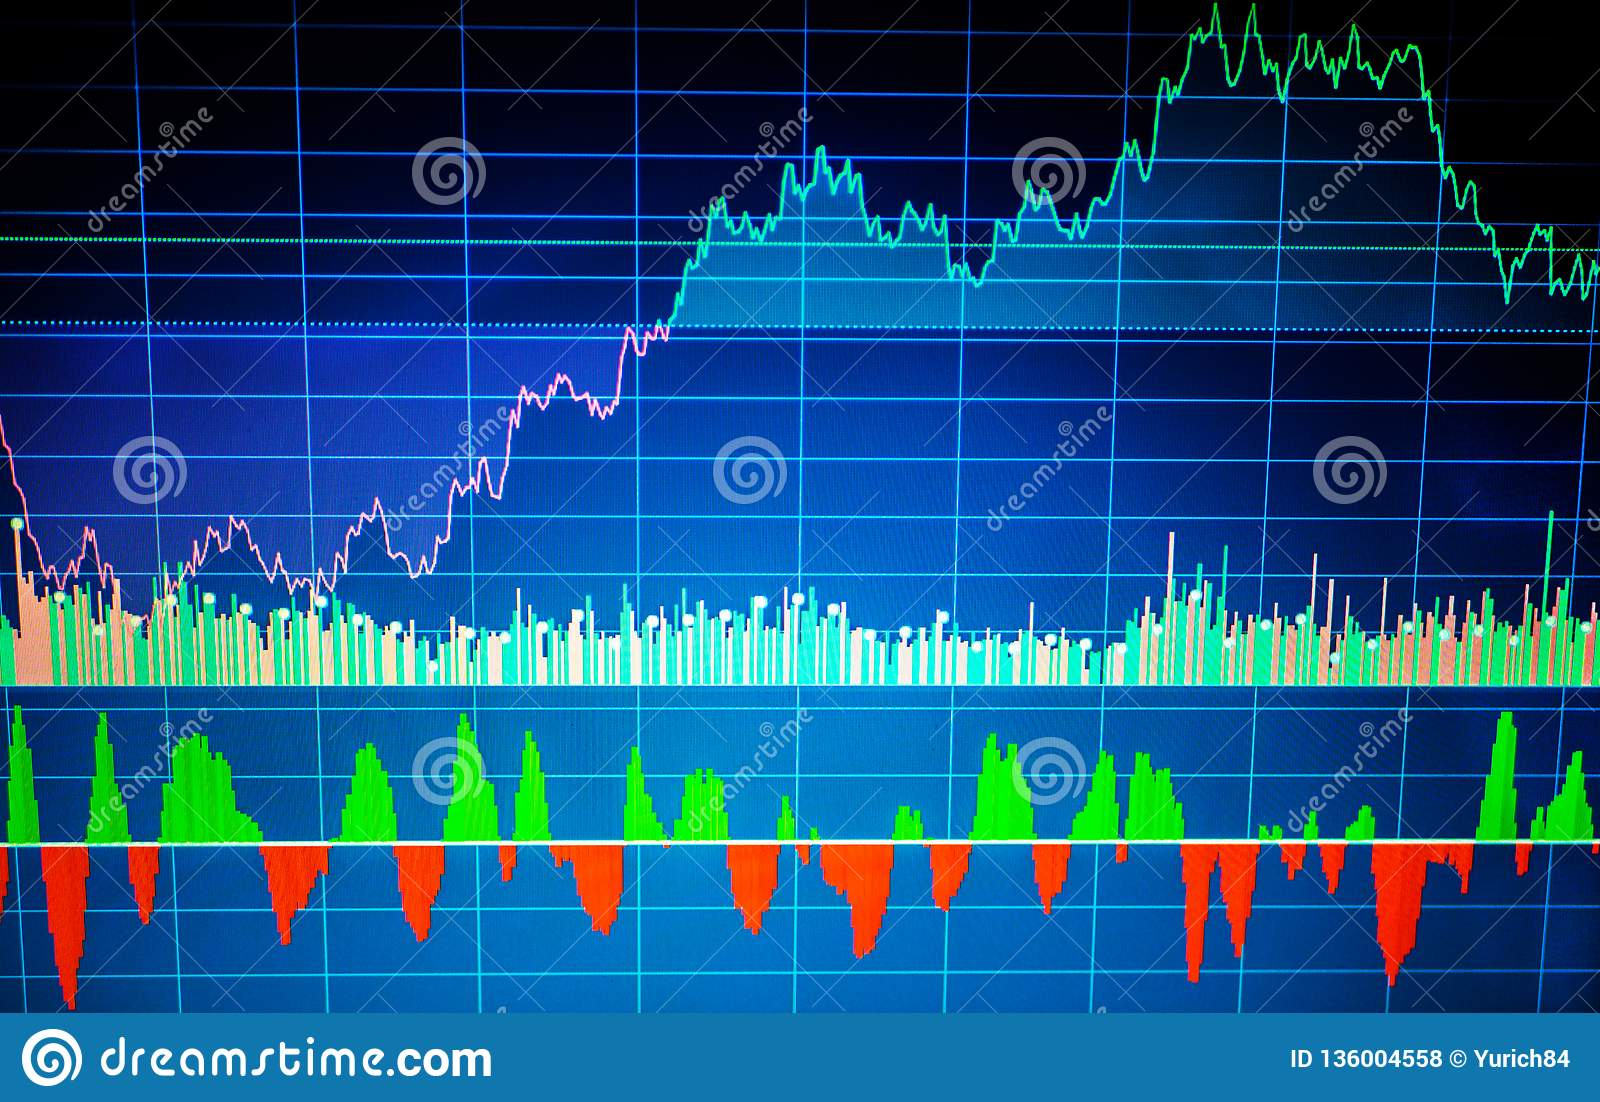 Analysing Stock Market Data On A Monitor  Financial Data On